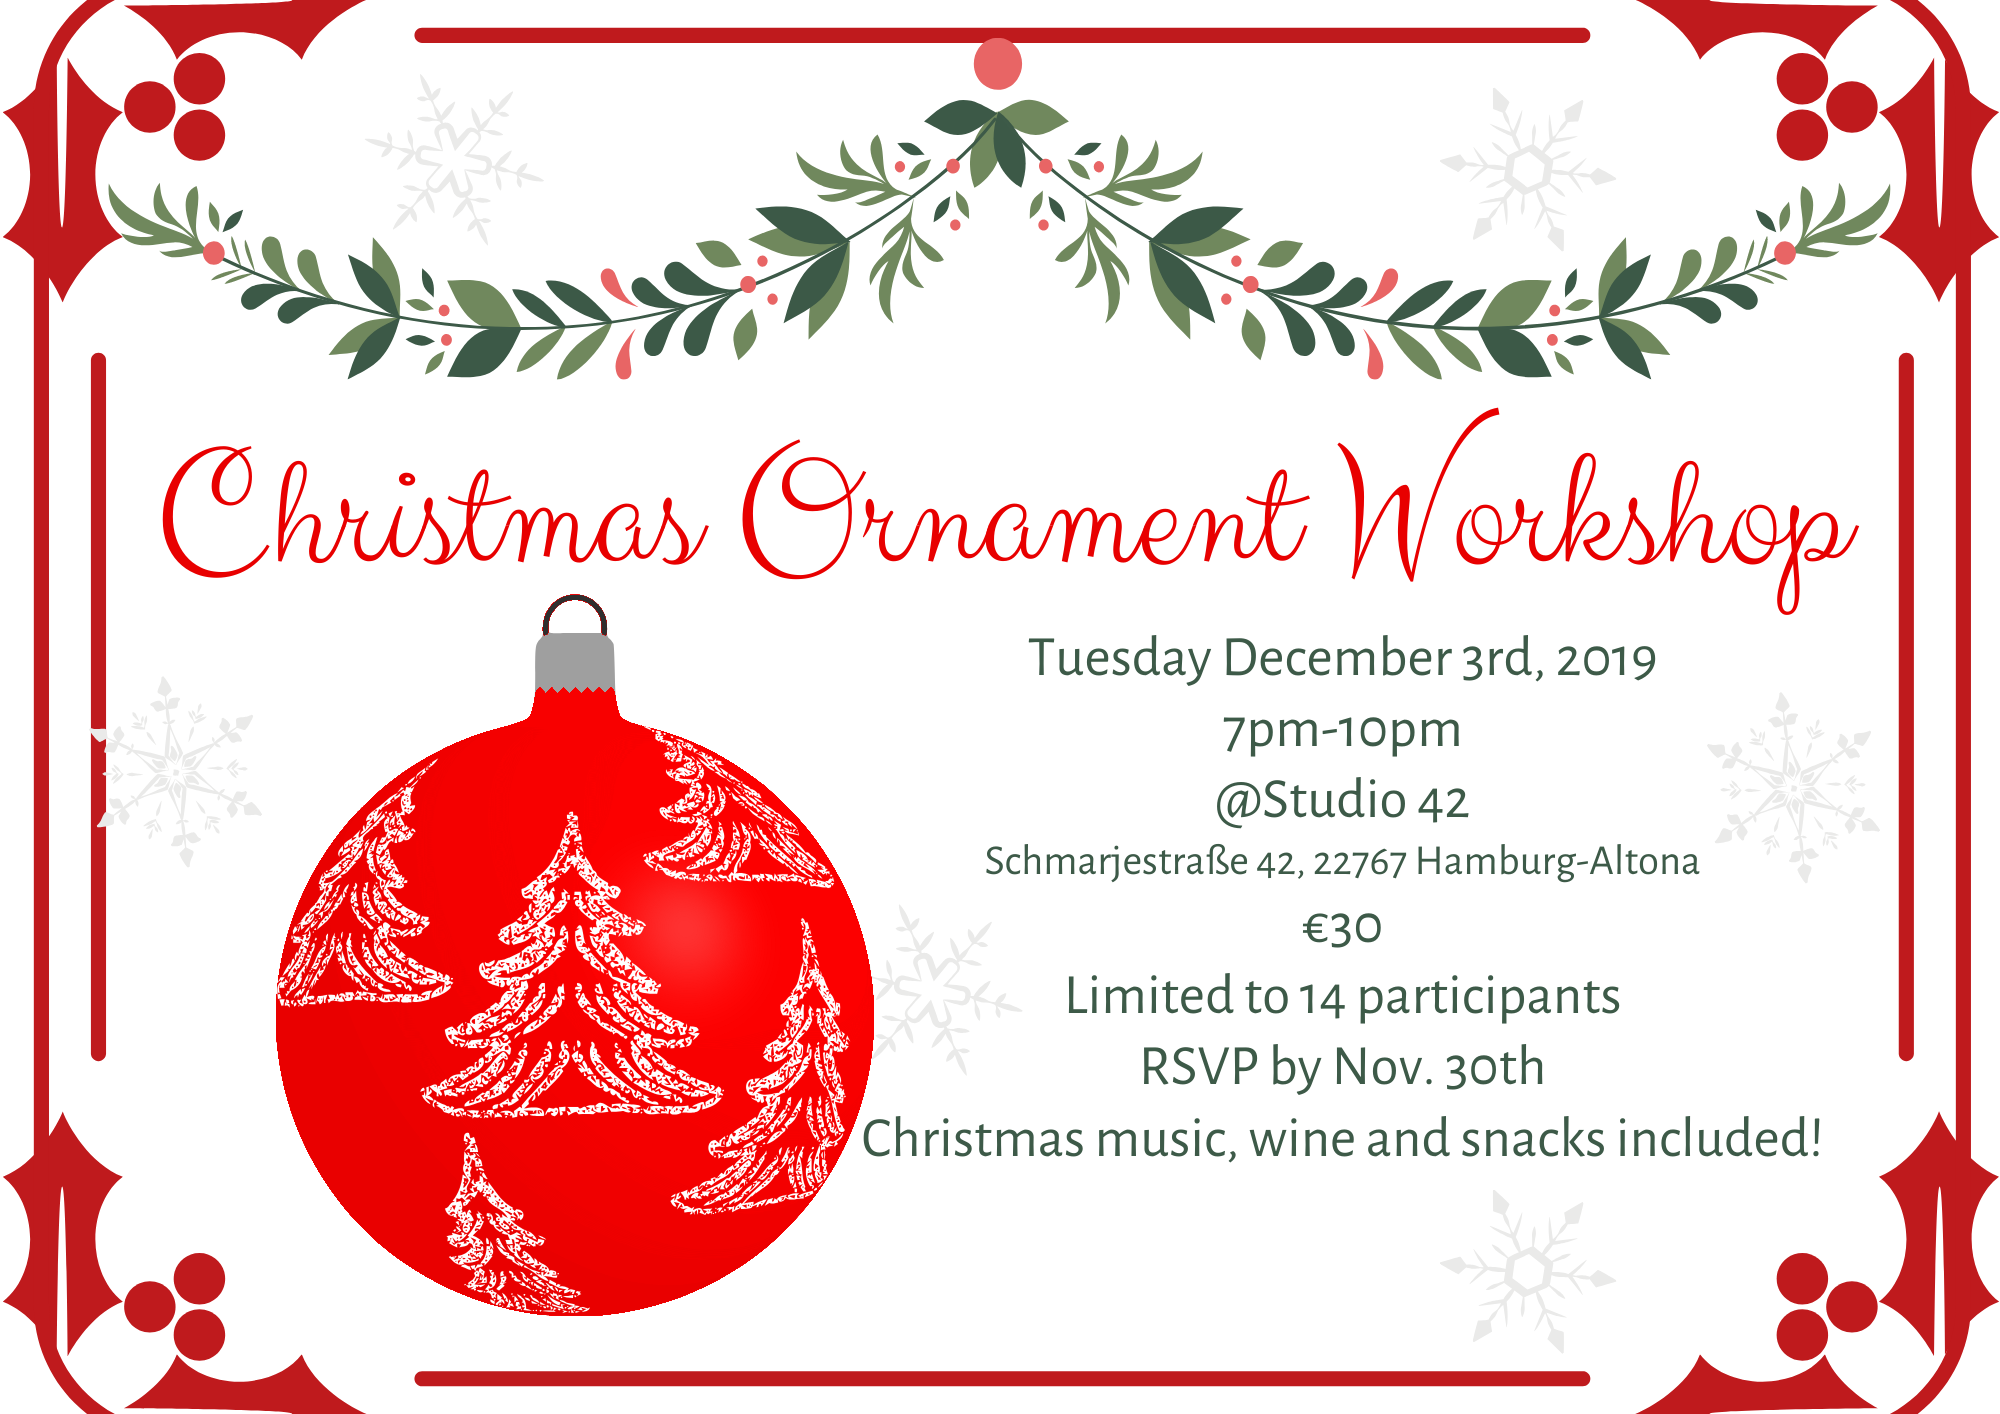 Christmas Ornament Workshop